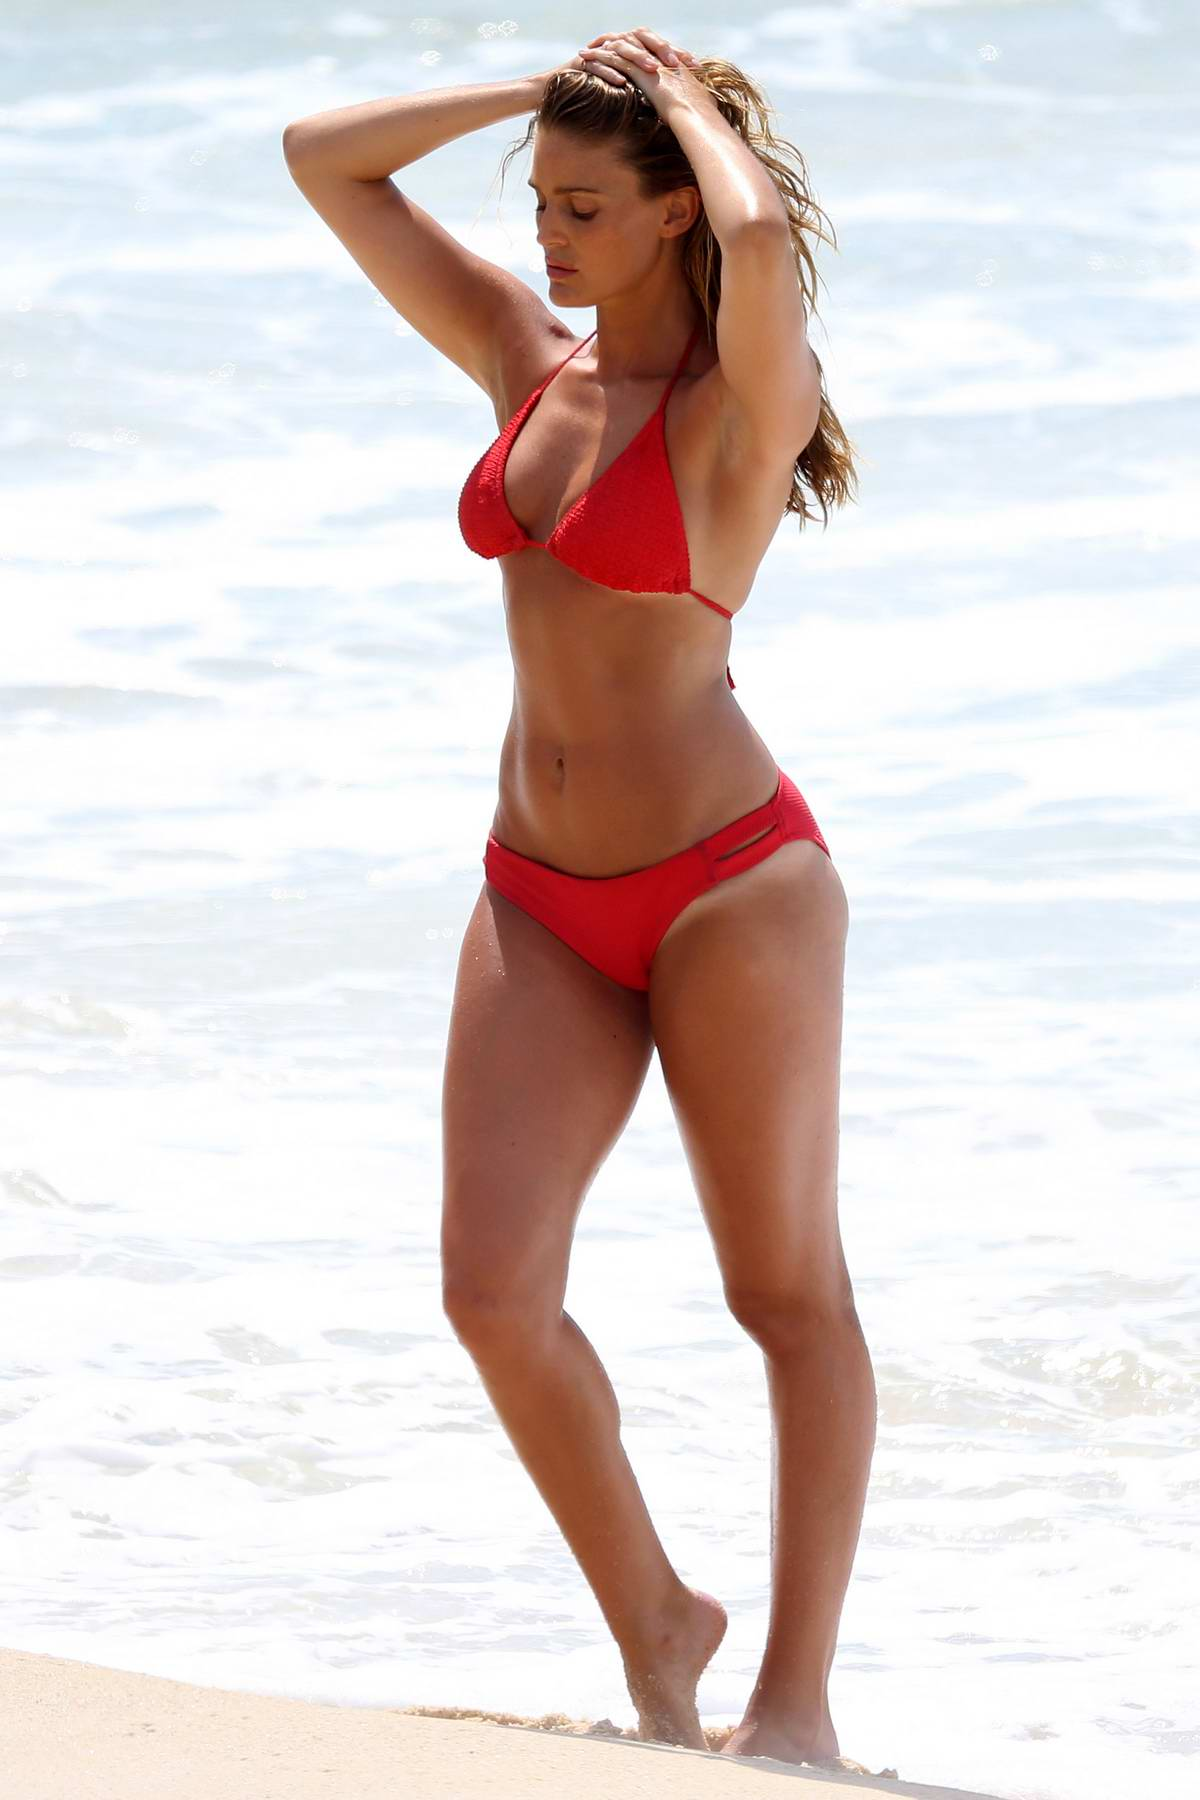 Alyce Crawford poses in a red bikini during a photoshoot at the Bondi beach, Sydney, Australia